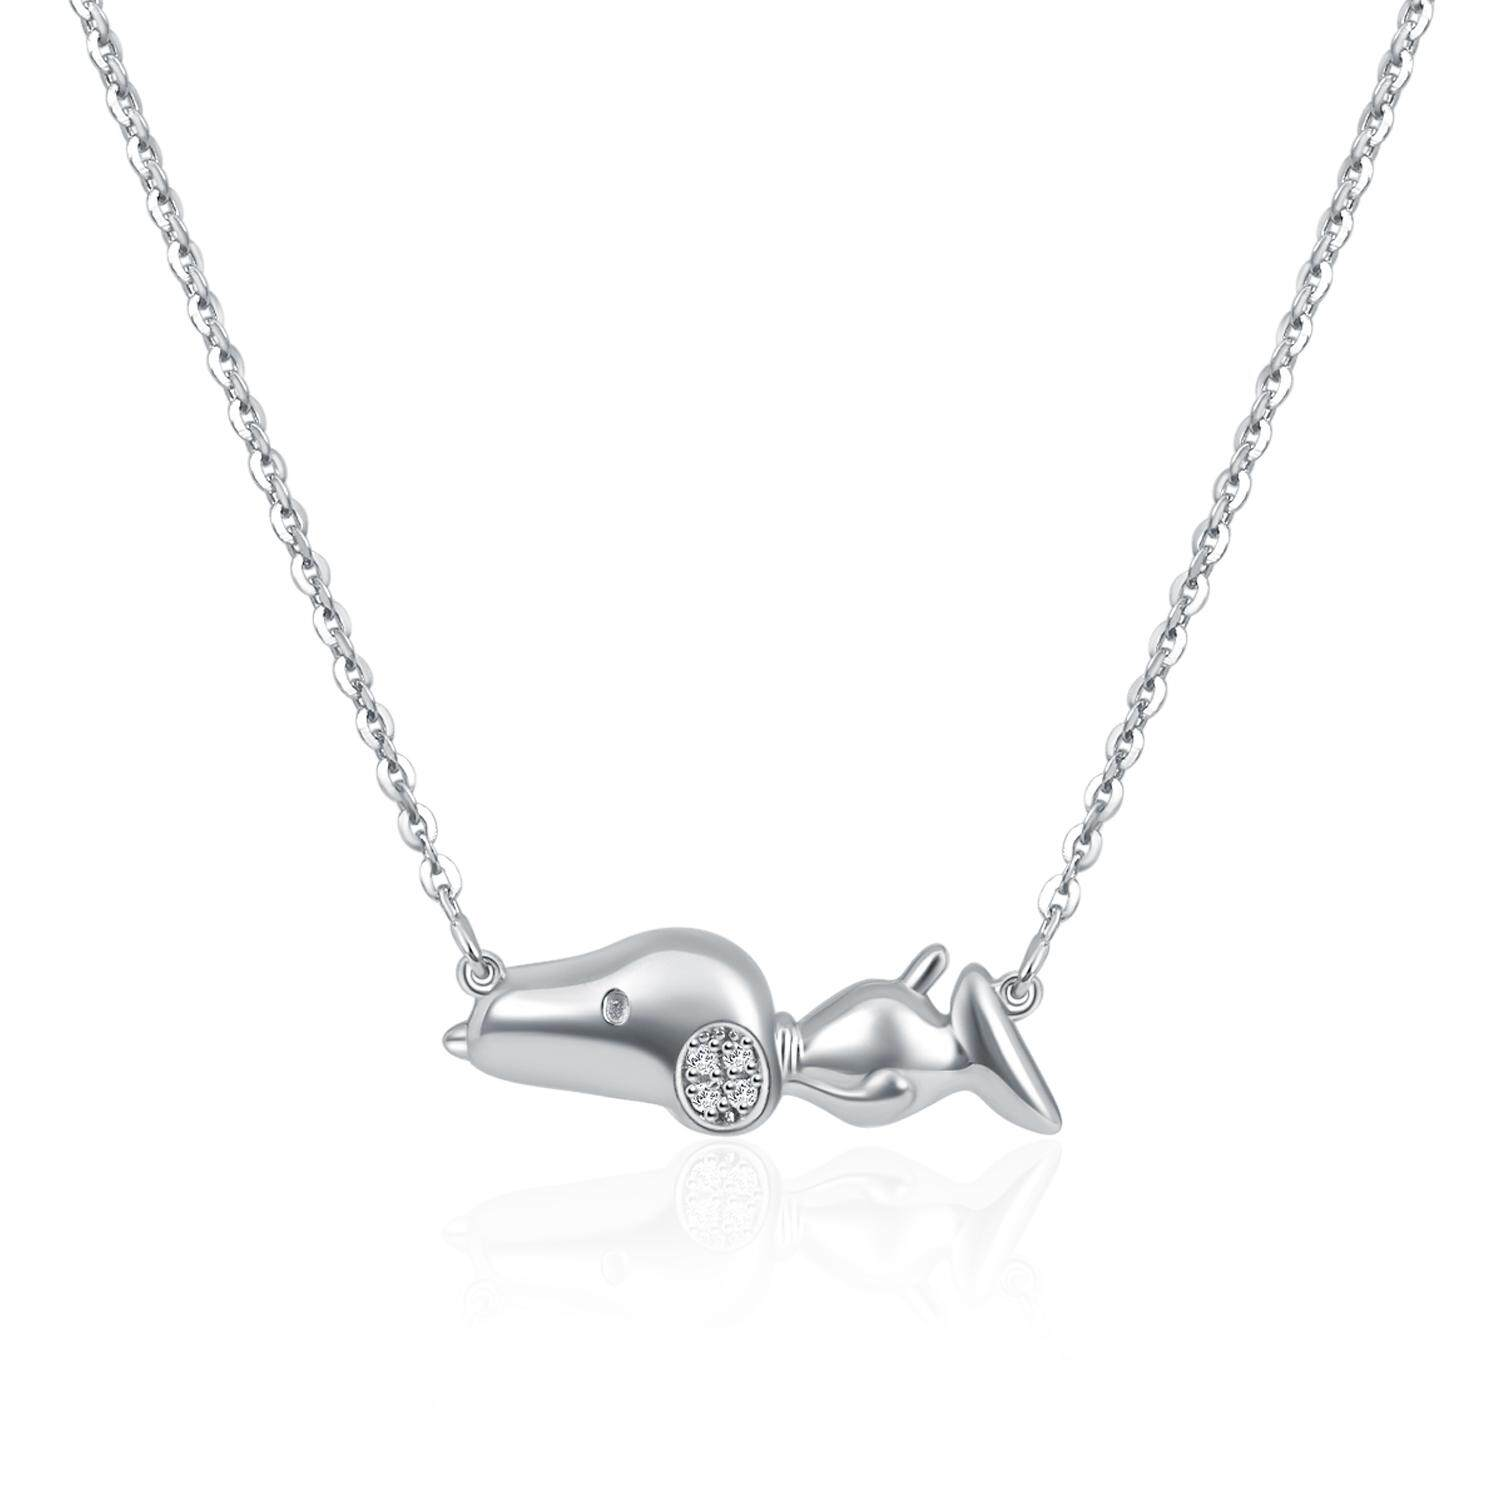 Sk Jewellery Buy At Best Price In Malaysia Www Cocoa Jewelry Rules Of Love Bracelet Emas Relaxing Snoopy Diamond Necklace